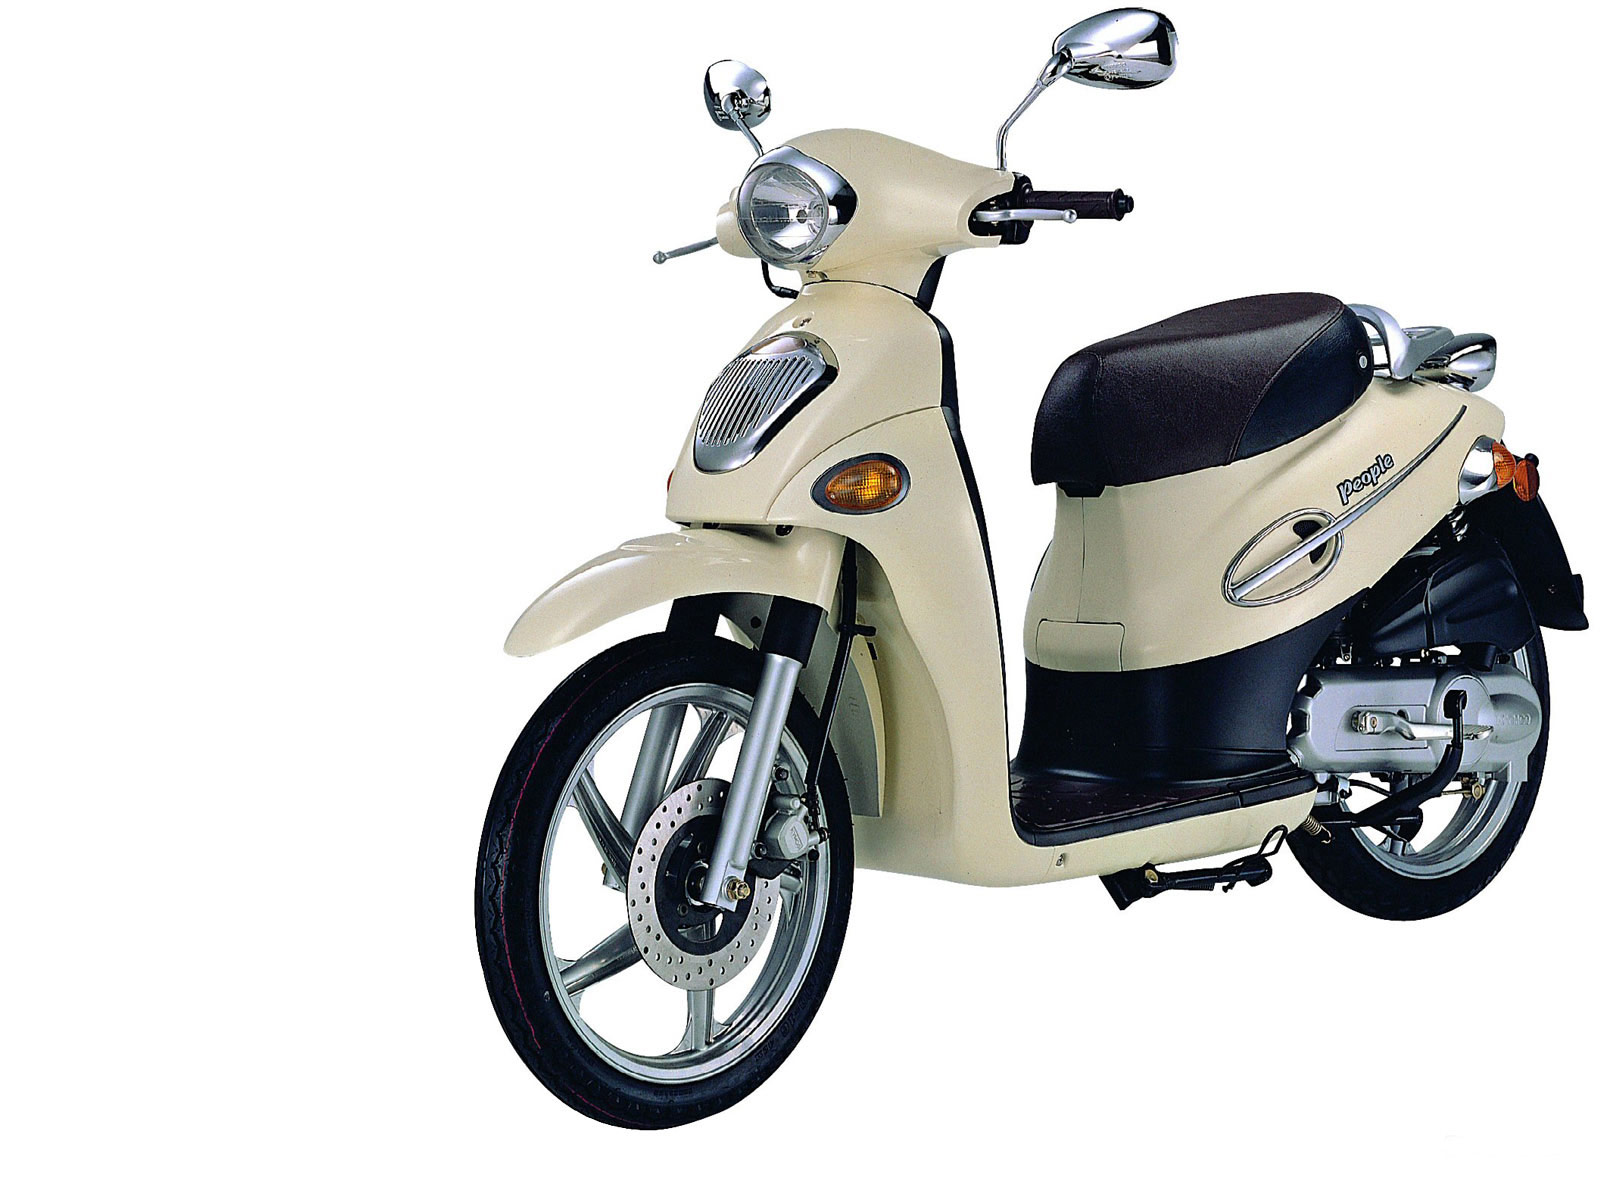 Kymco Scooter Wiring Diagram further 1988 Chevrolet S10 Engine  partment besides 1988 1997 Suzuki Gsx600f Gsx750f Katana Online Service Manual moreover 150cc Wiring Diagram also Cat Boat Diagram. on tank scooter wiring diagram